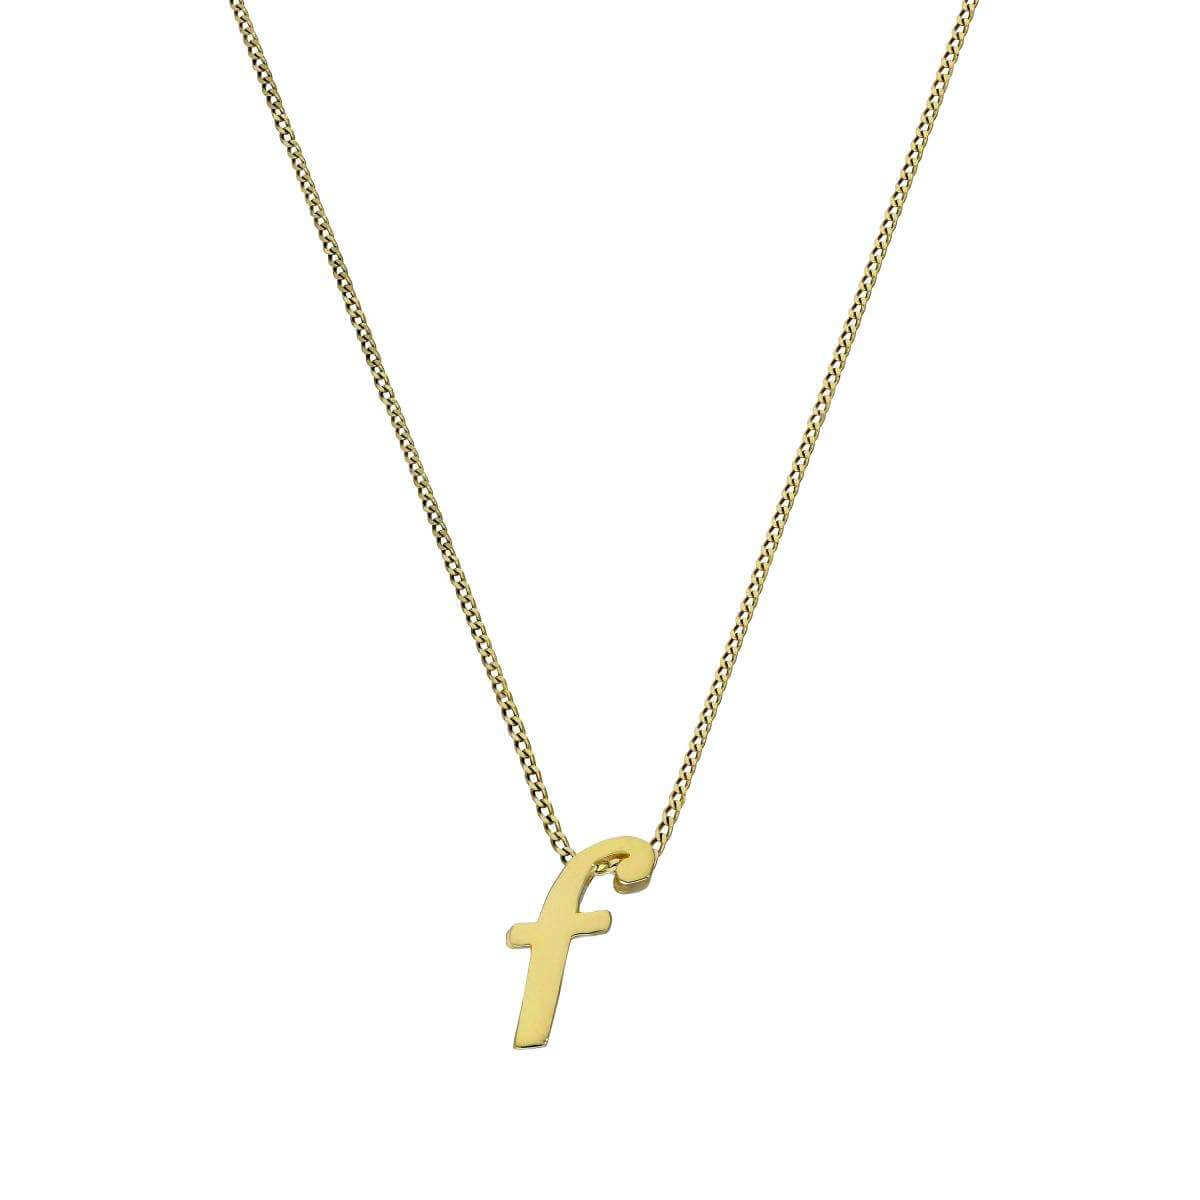 Tiny 9ct Gold Alphabet Letter F Pendant on Chain 16 - 20 Inches